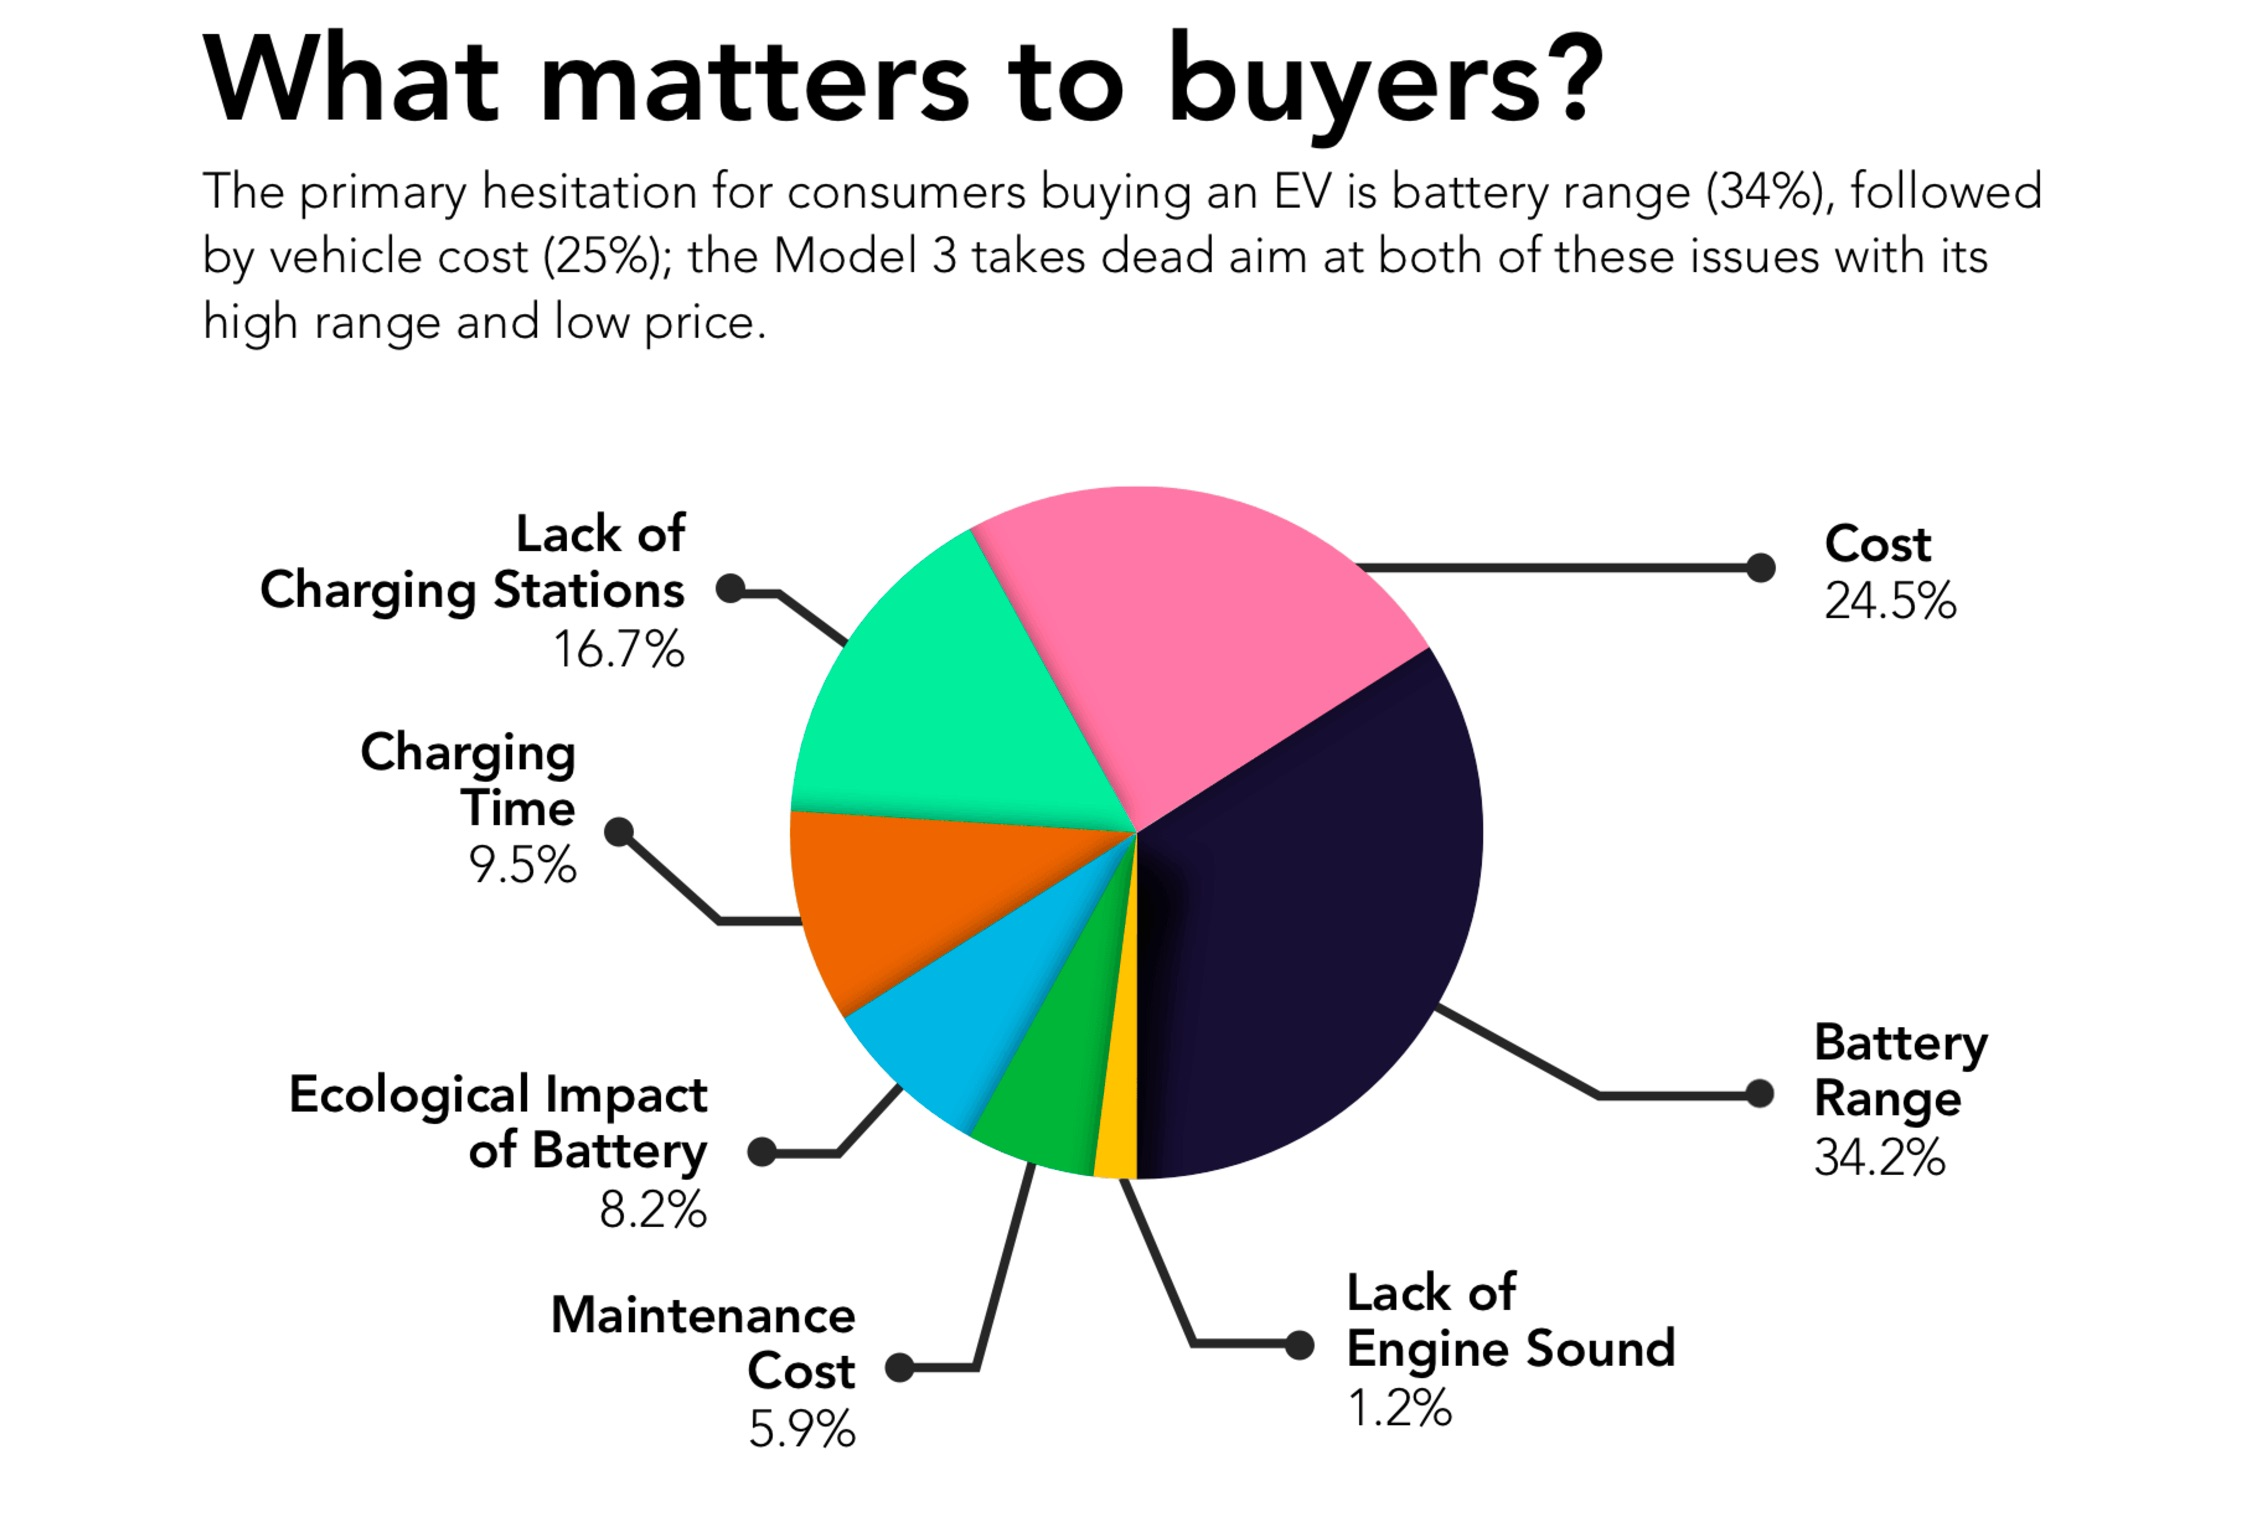 What matters to Tesla Model 3 buyers on survey data from Autolist